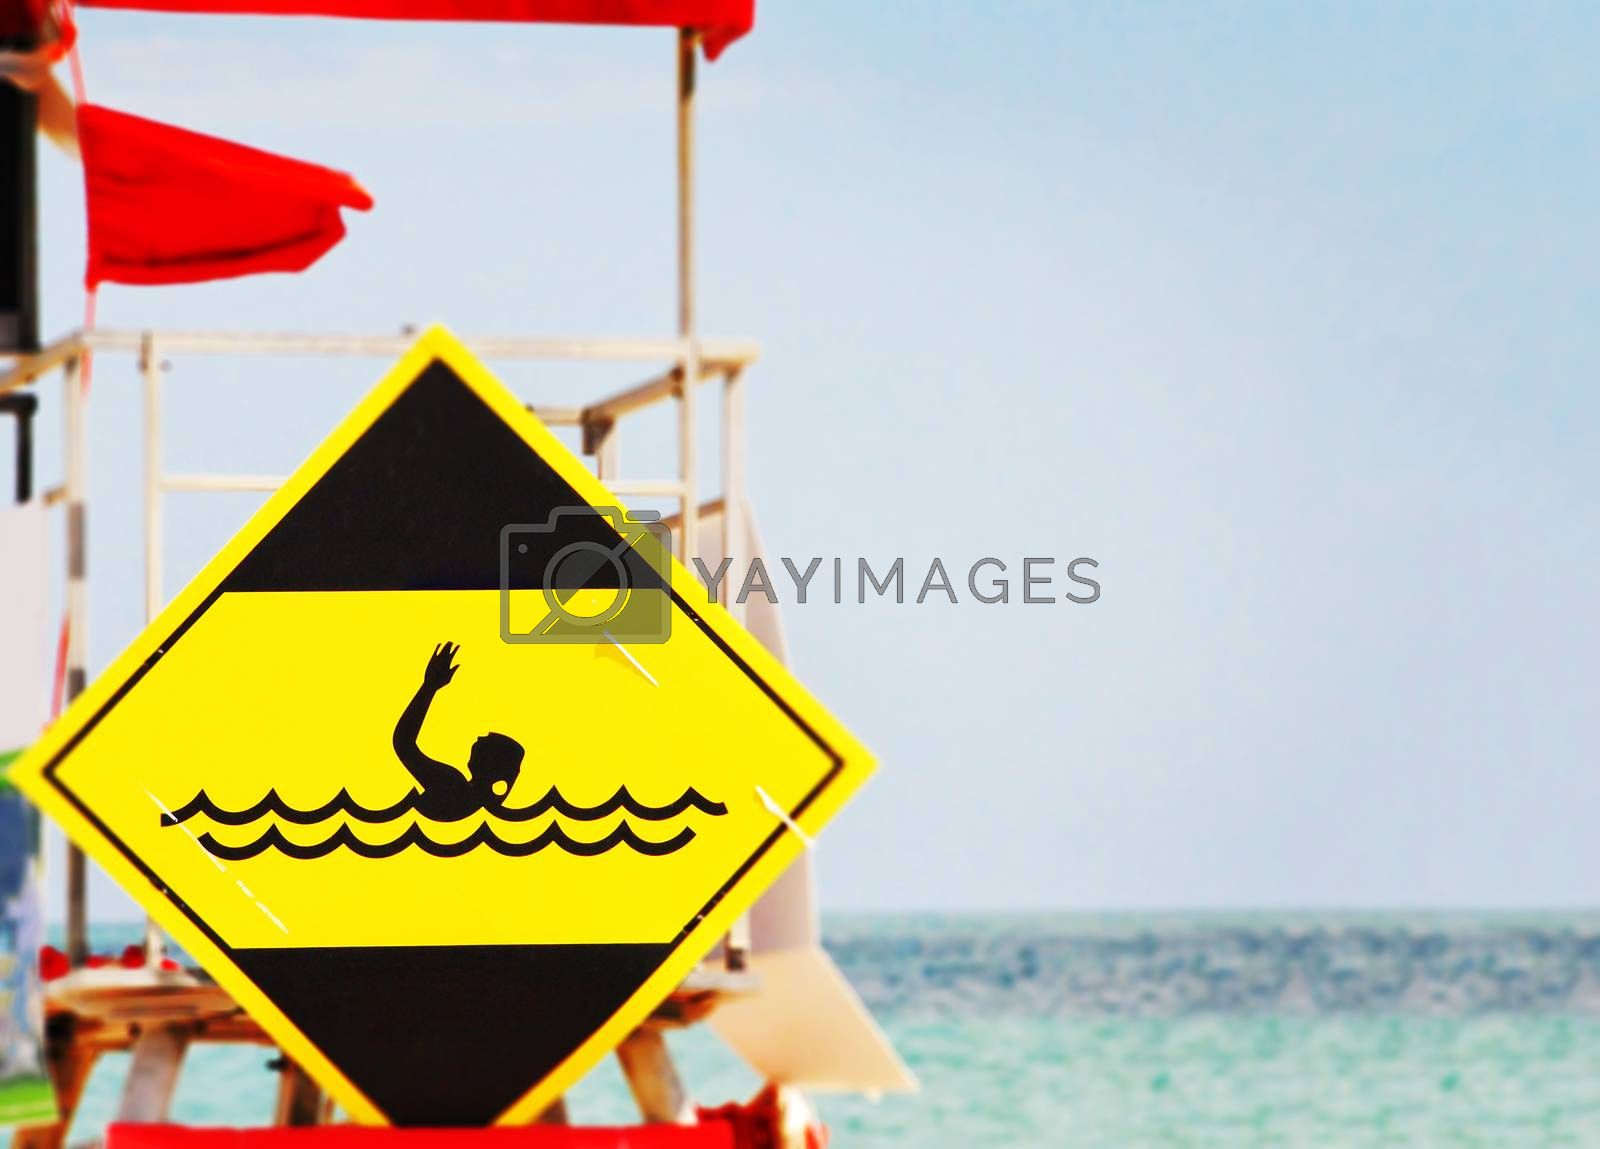 yellow danger signal depicting a drowning swimmer in the waves of a rough sea